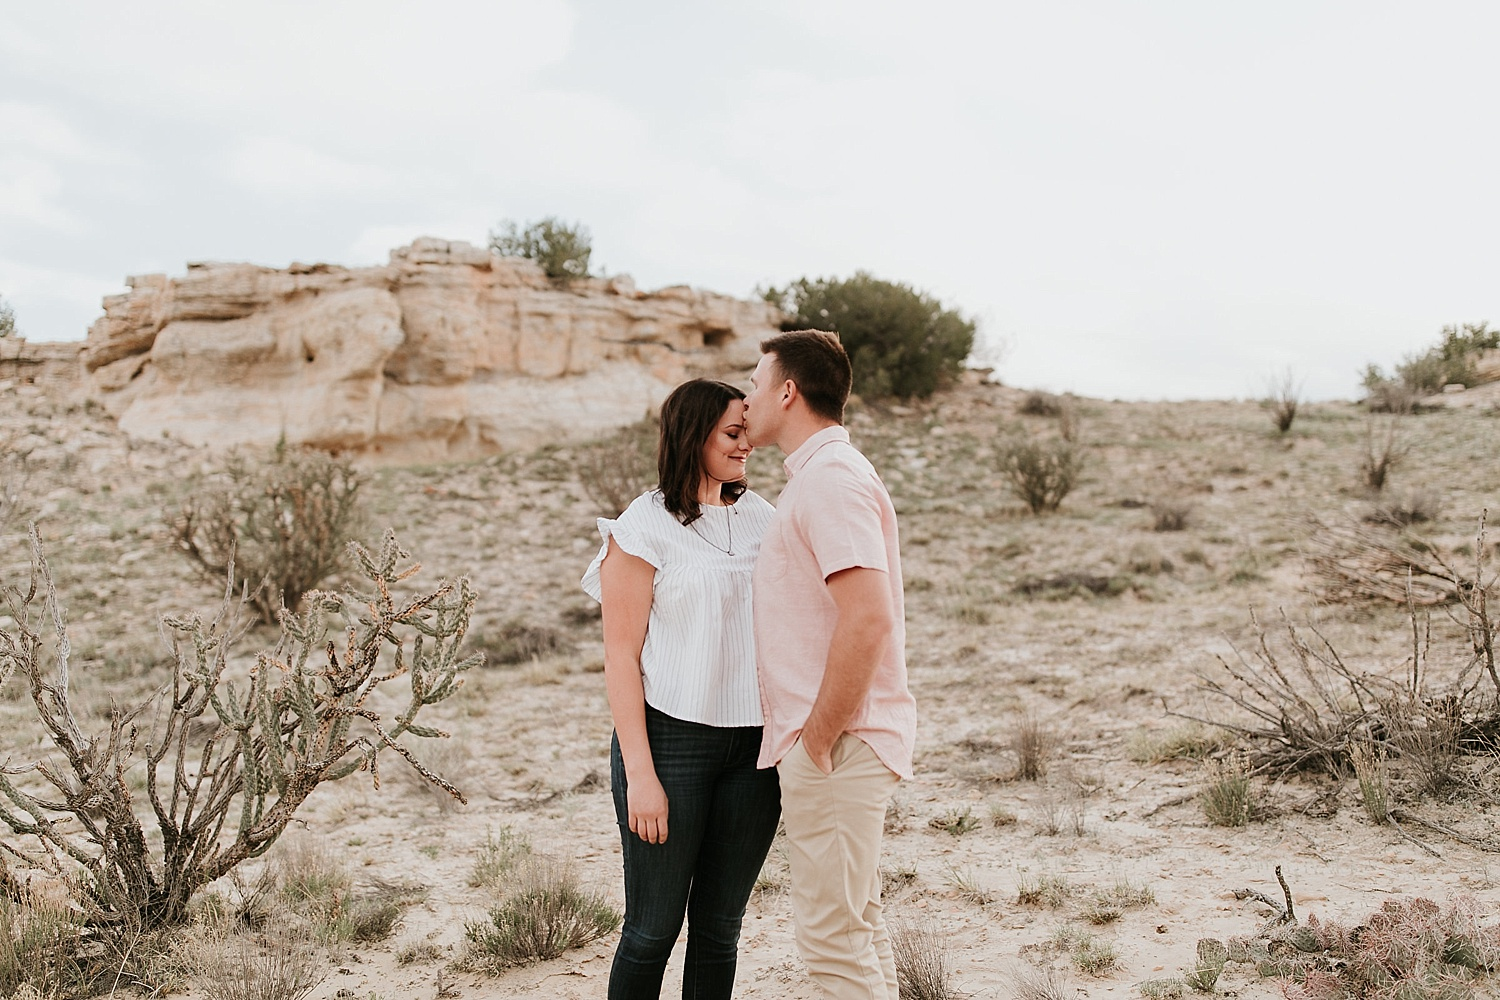 Alicia+lucia+photography+-+albuquerque+wedding+photographer+-+santa+fe+wedding+photography+-+new+mexico+wedding+photographer+-+new+mexico+engagement+-+desert+engagement_0007.jpg